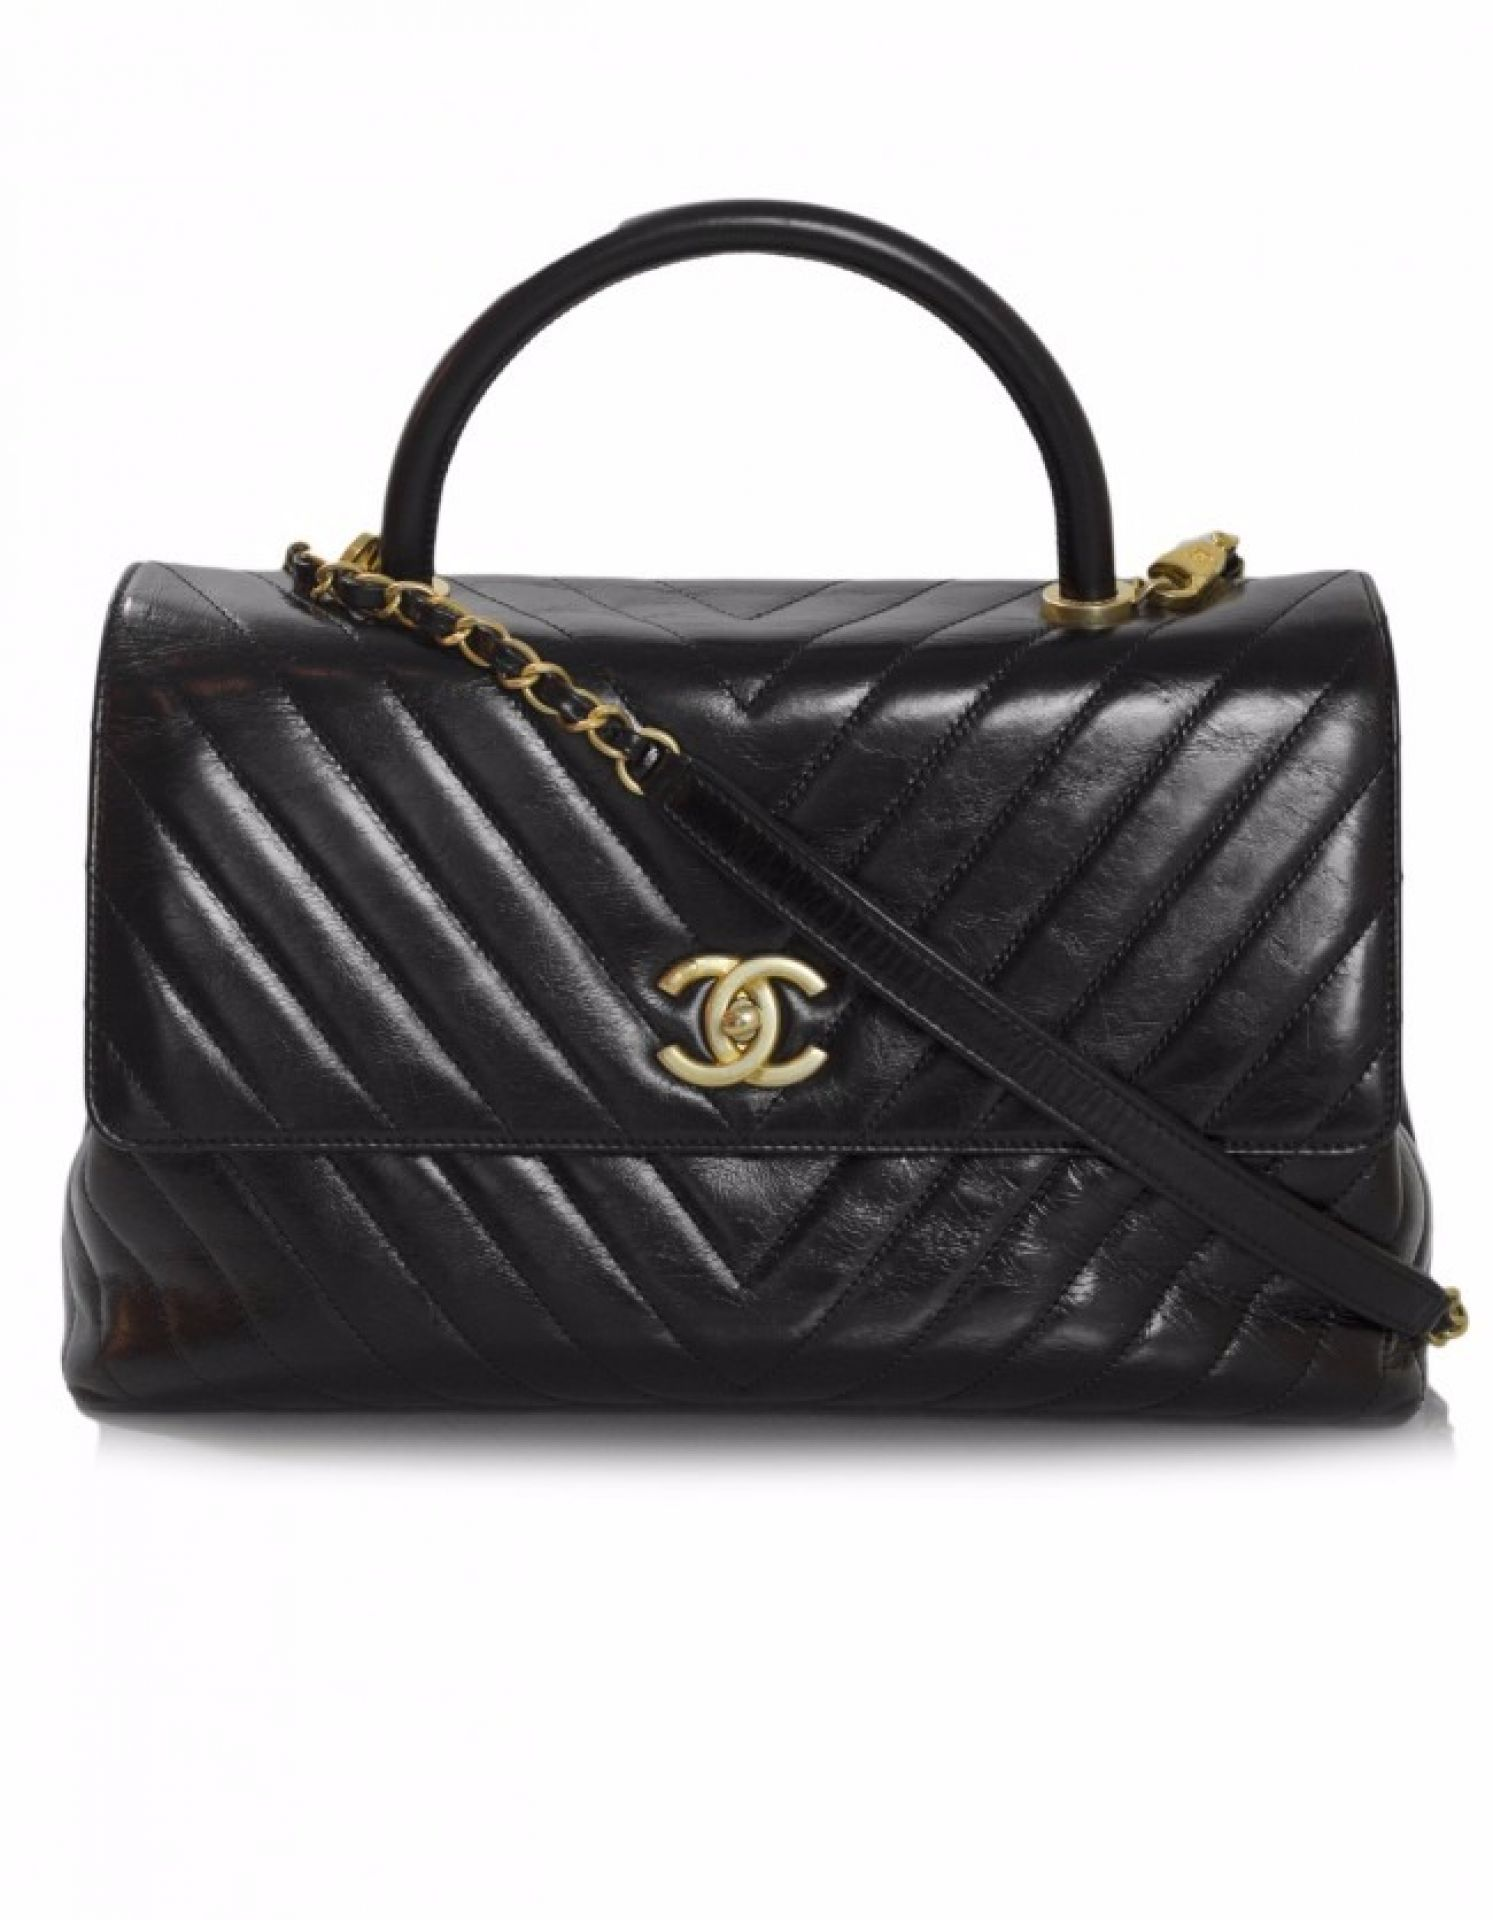 Chanel Black Distressed Calfskin Medium Coco Top Handle Bag